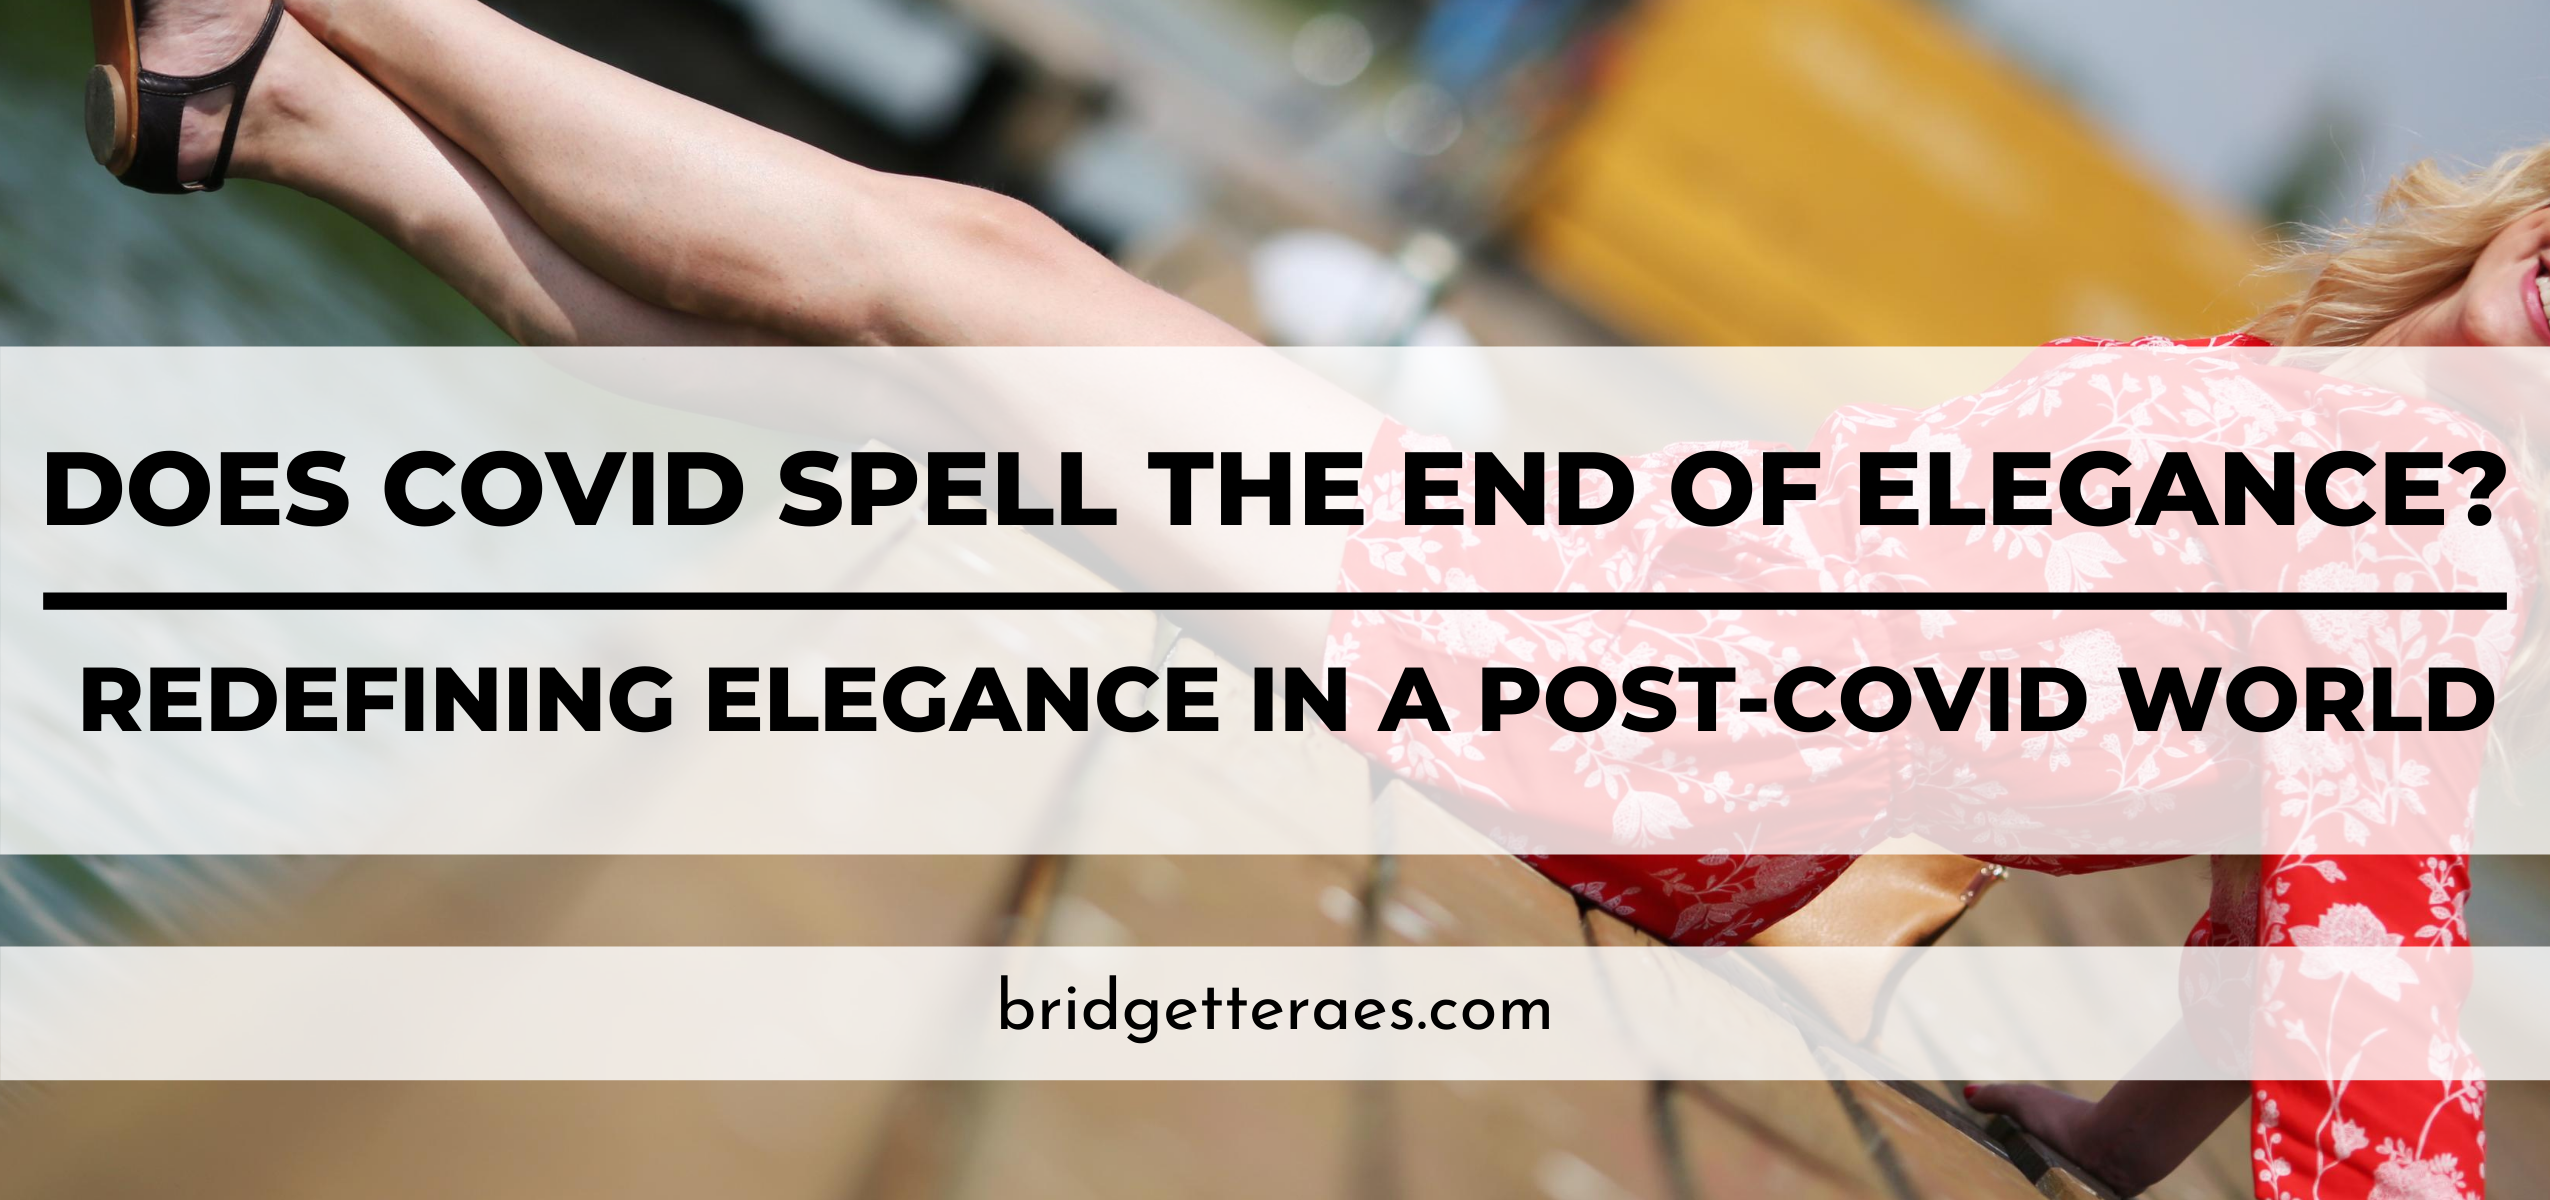 Does COVID Spell the End of Elegance?  Redefining Elegance in a Post-COVID World